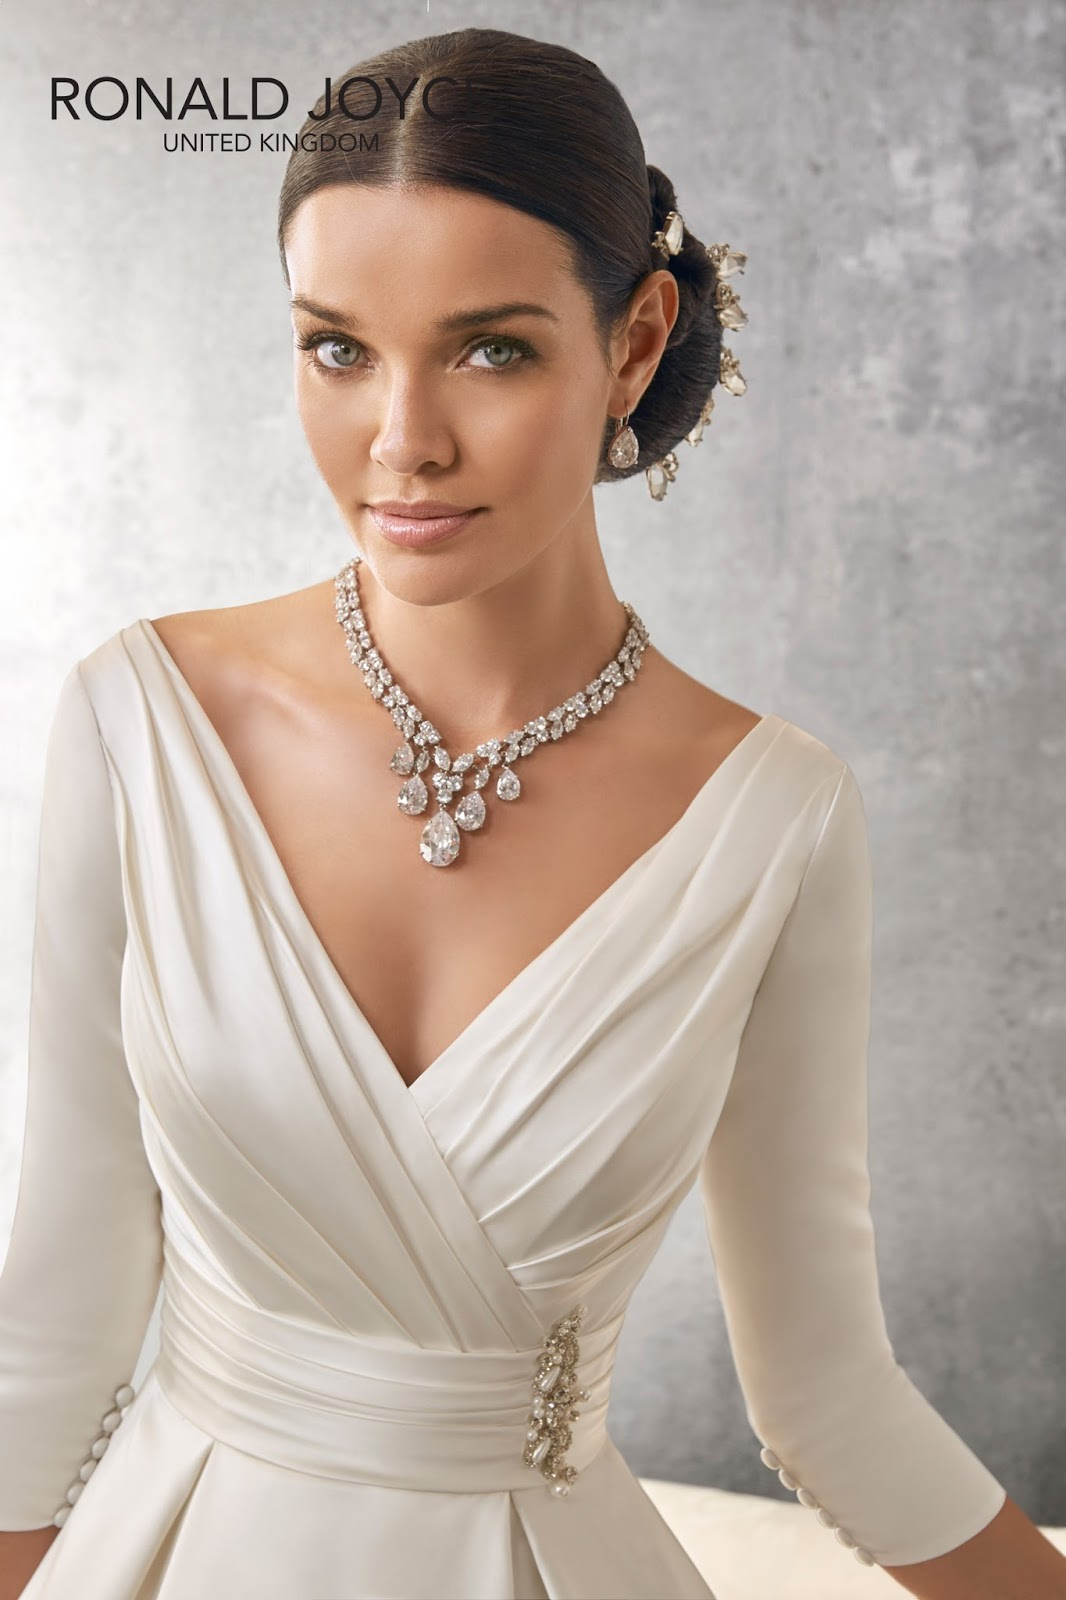 If You Are Looking For A Beautiful Long Sleeved Gown Your Winter Wedding Then Look No Further Than This Offering From Ronald Joyce